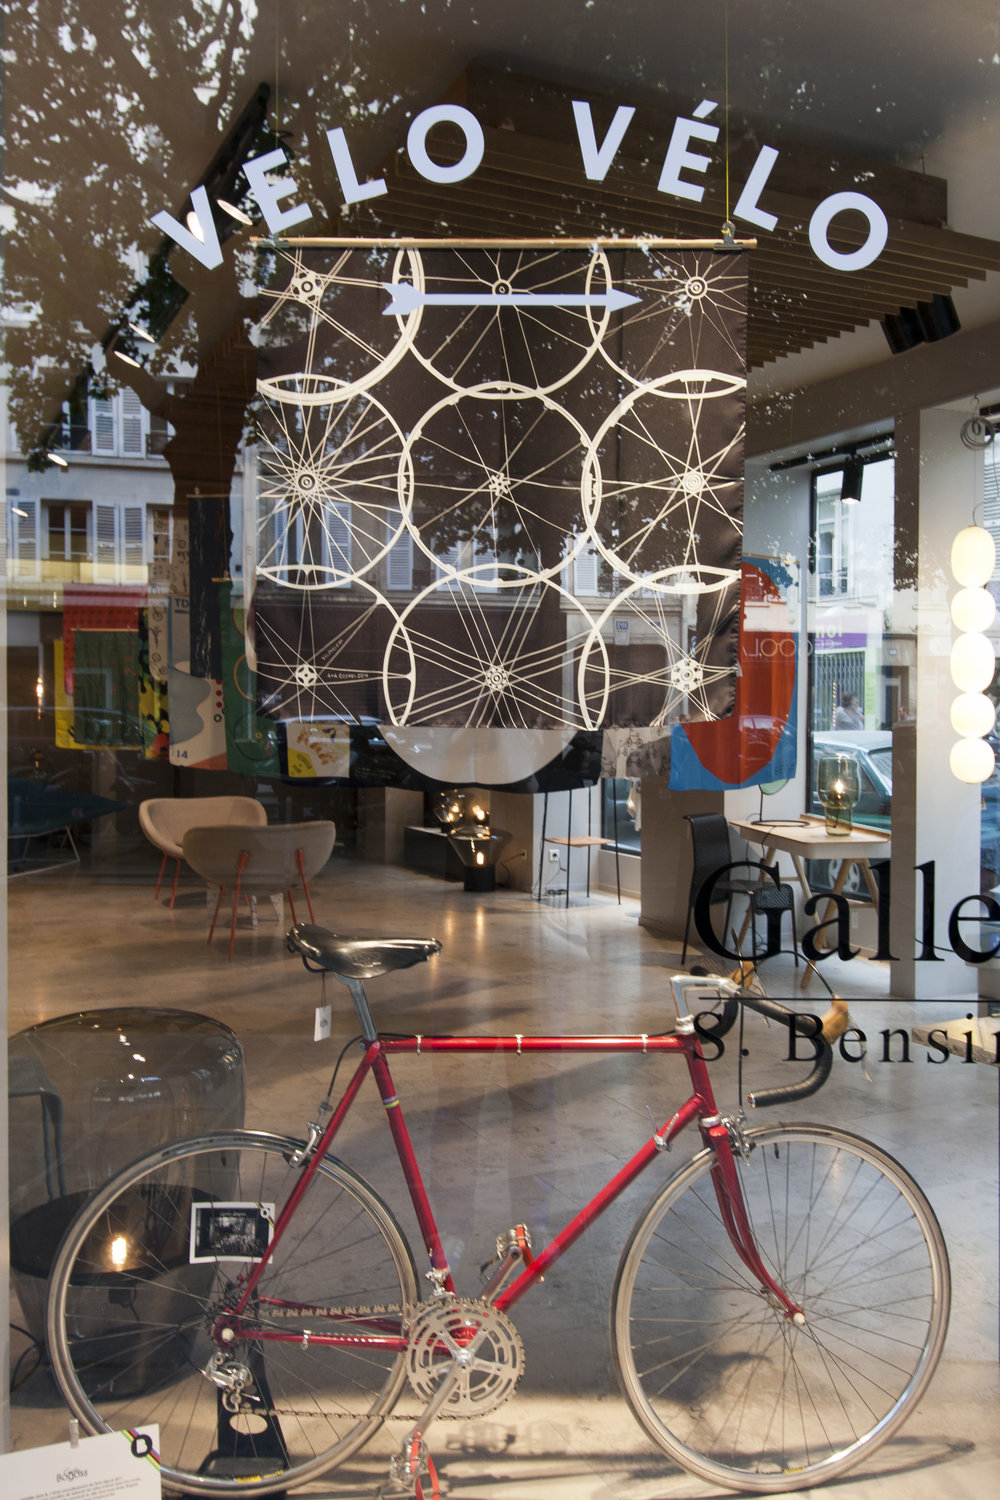 VELOVELO - Gallery S. Bensimon - Paris - 2014